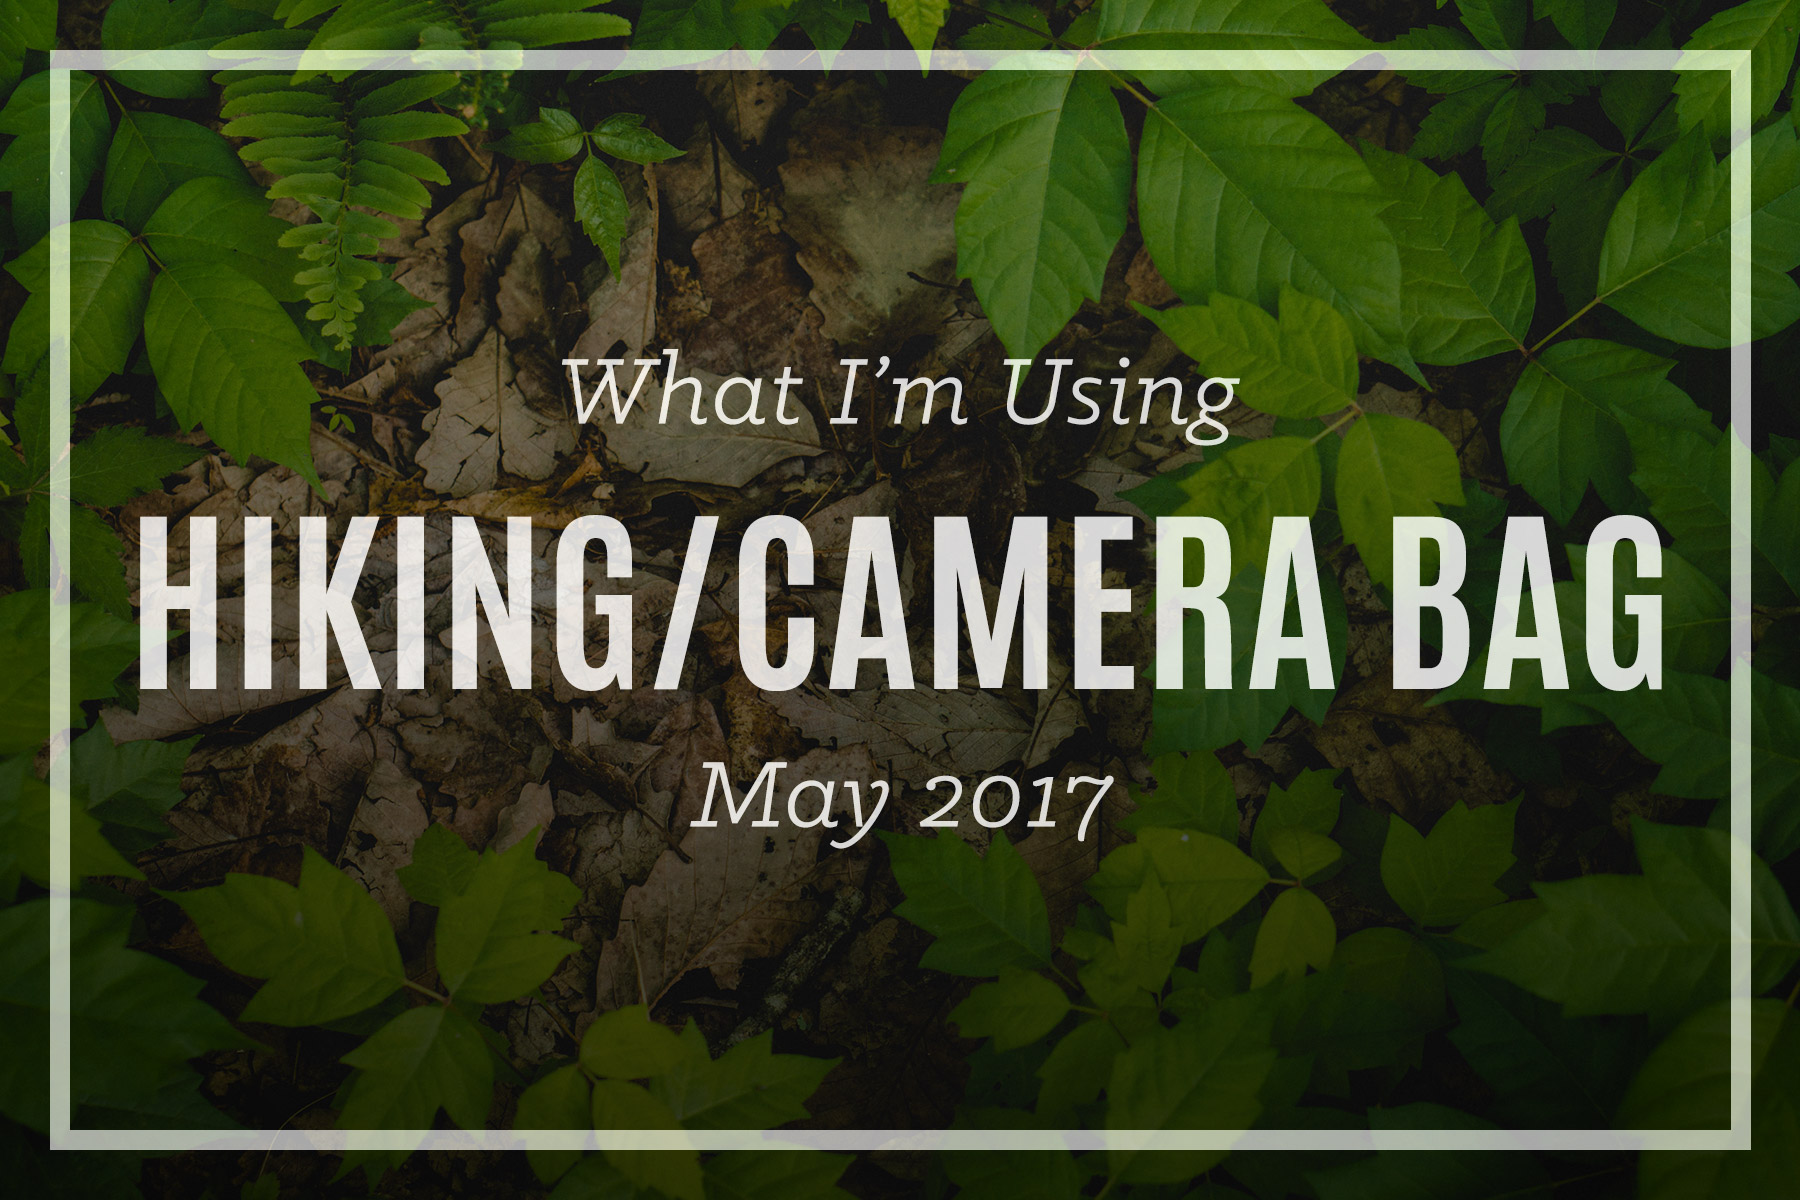 Hiking with Camera Gear